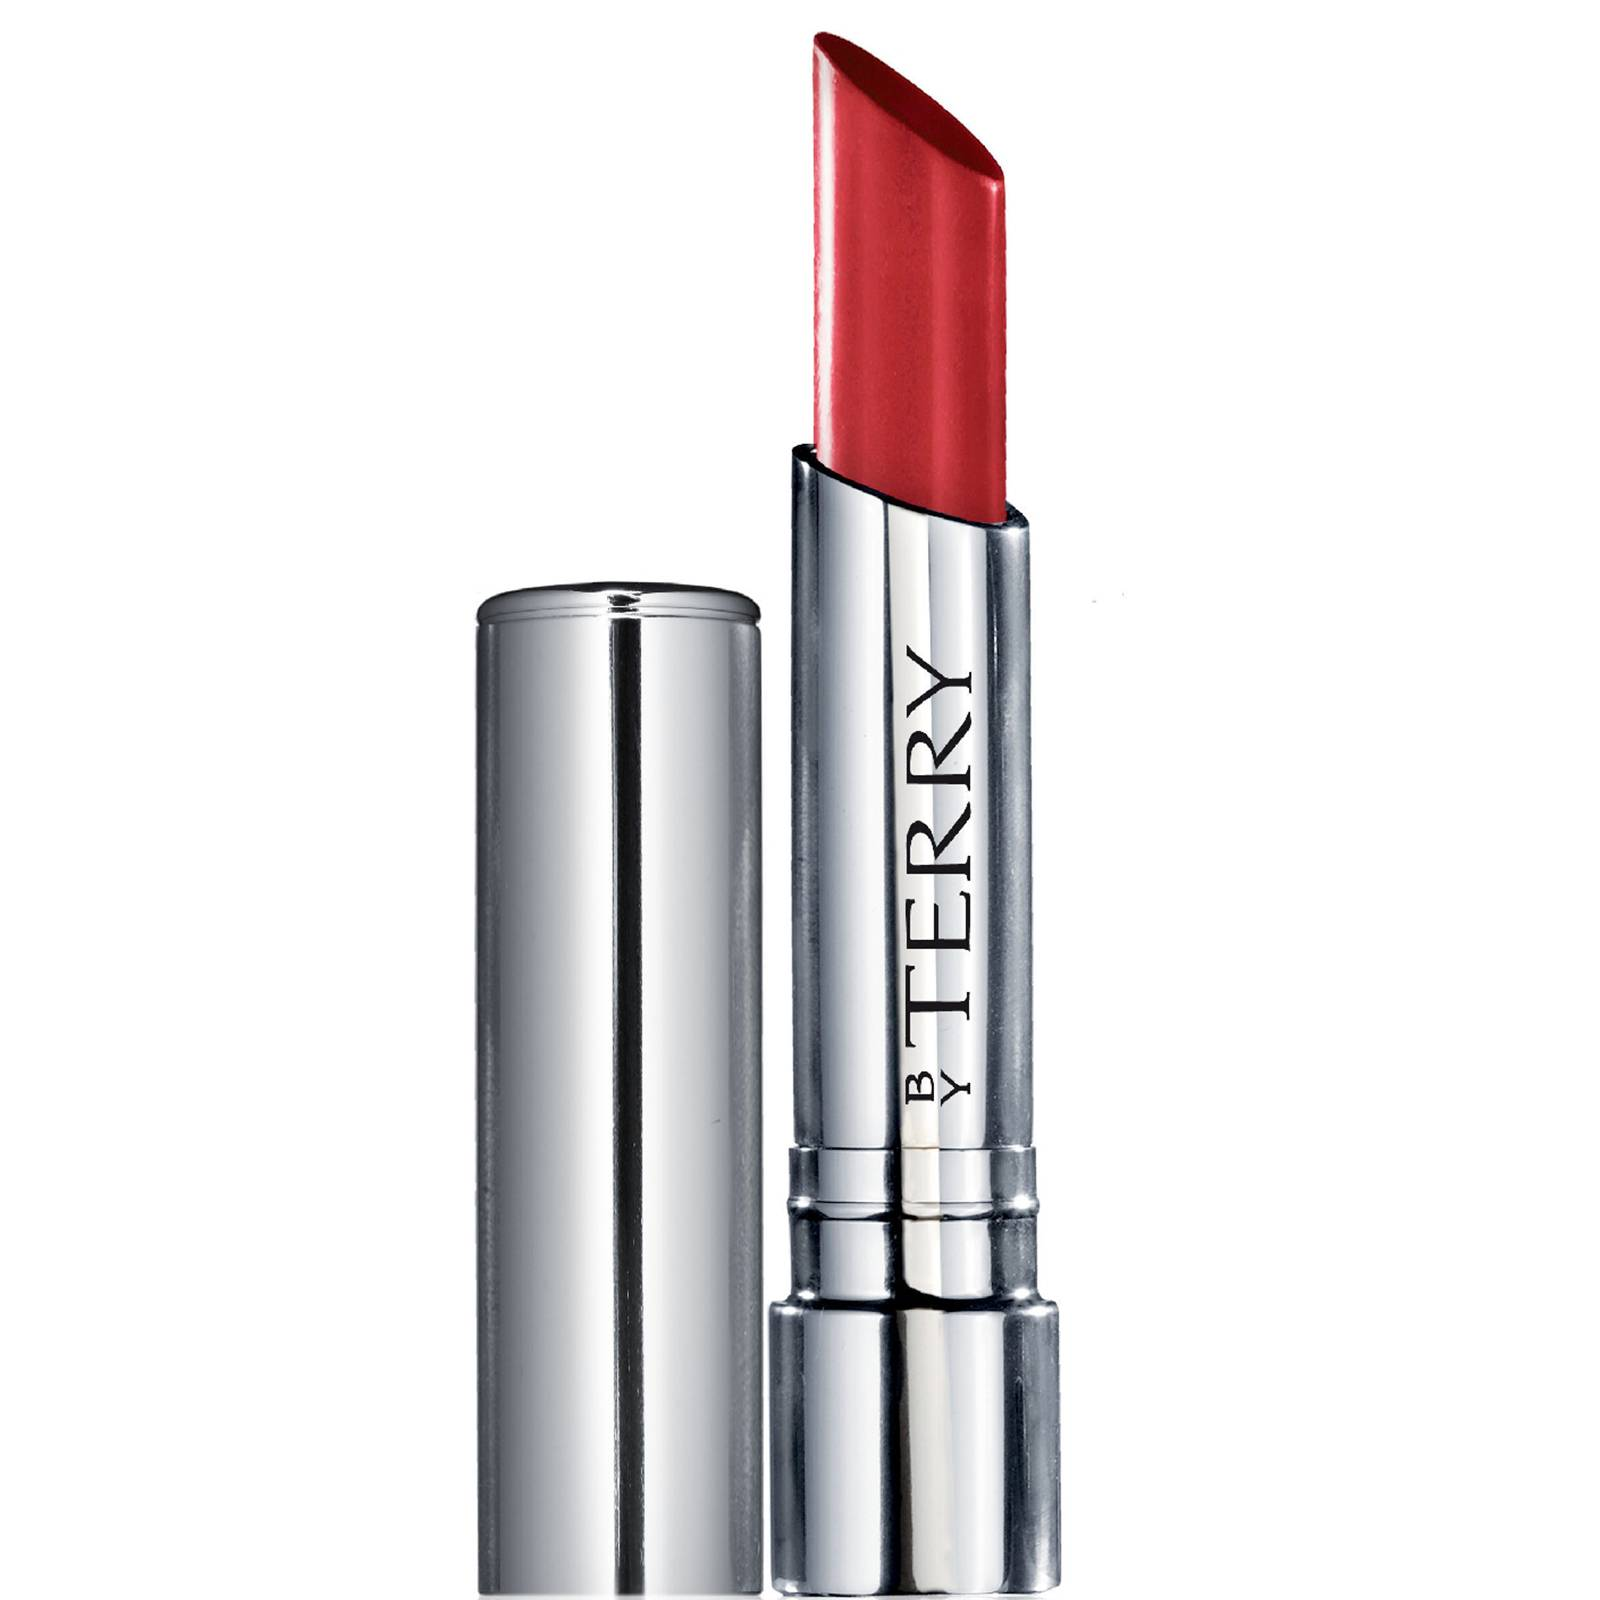 By Terry Hyaluronic Sheer Rouge Lipstick 3g (Various Shades) - 6. Party Girl